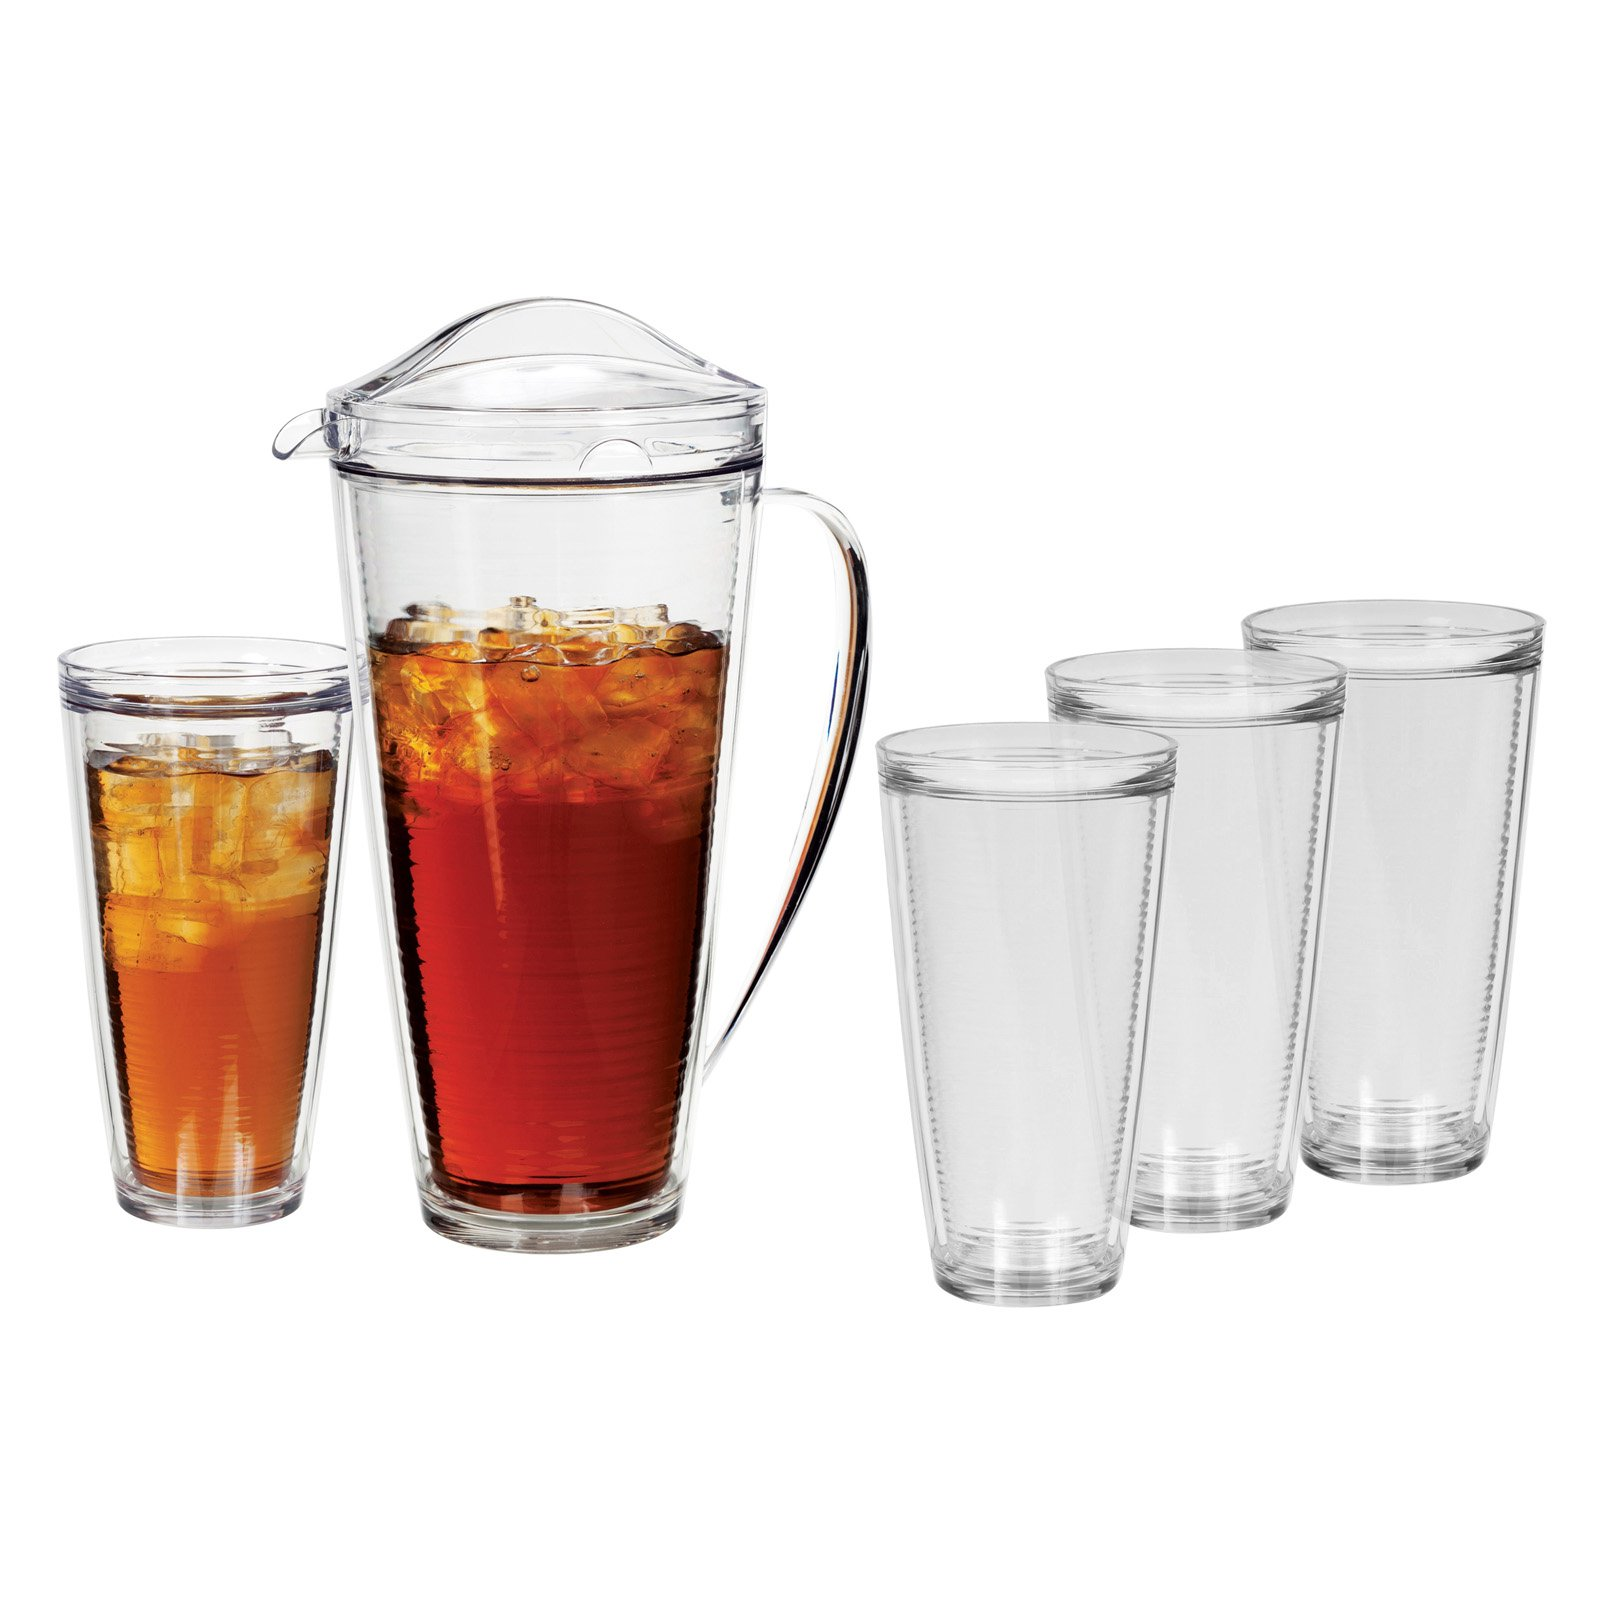 Creative Bath Insulated 70 oz. Pitcher and 22 oz. Tumblers - Set of 5